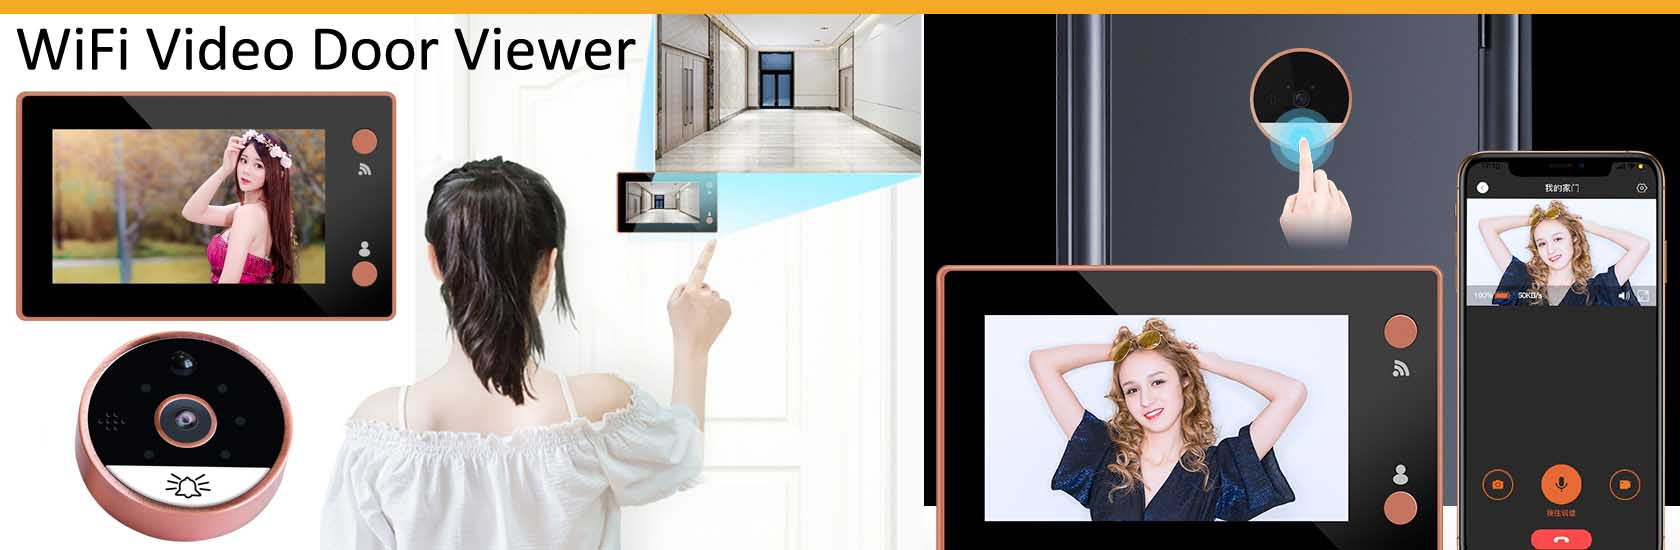 6 WiFi Video Door Viewer VF-DV04